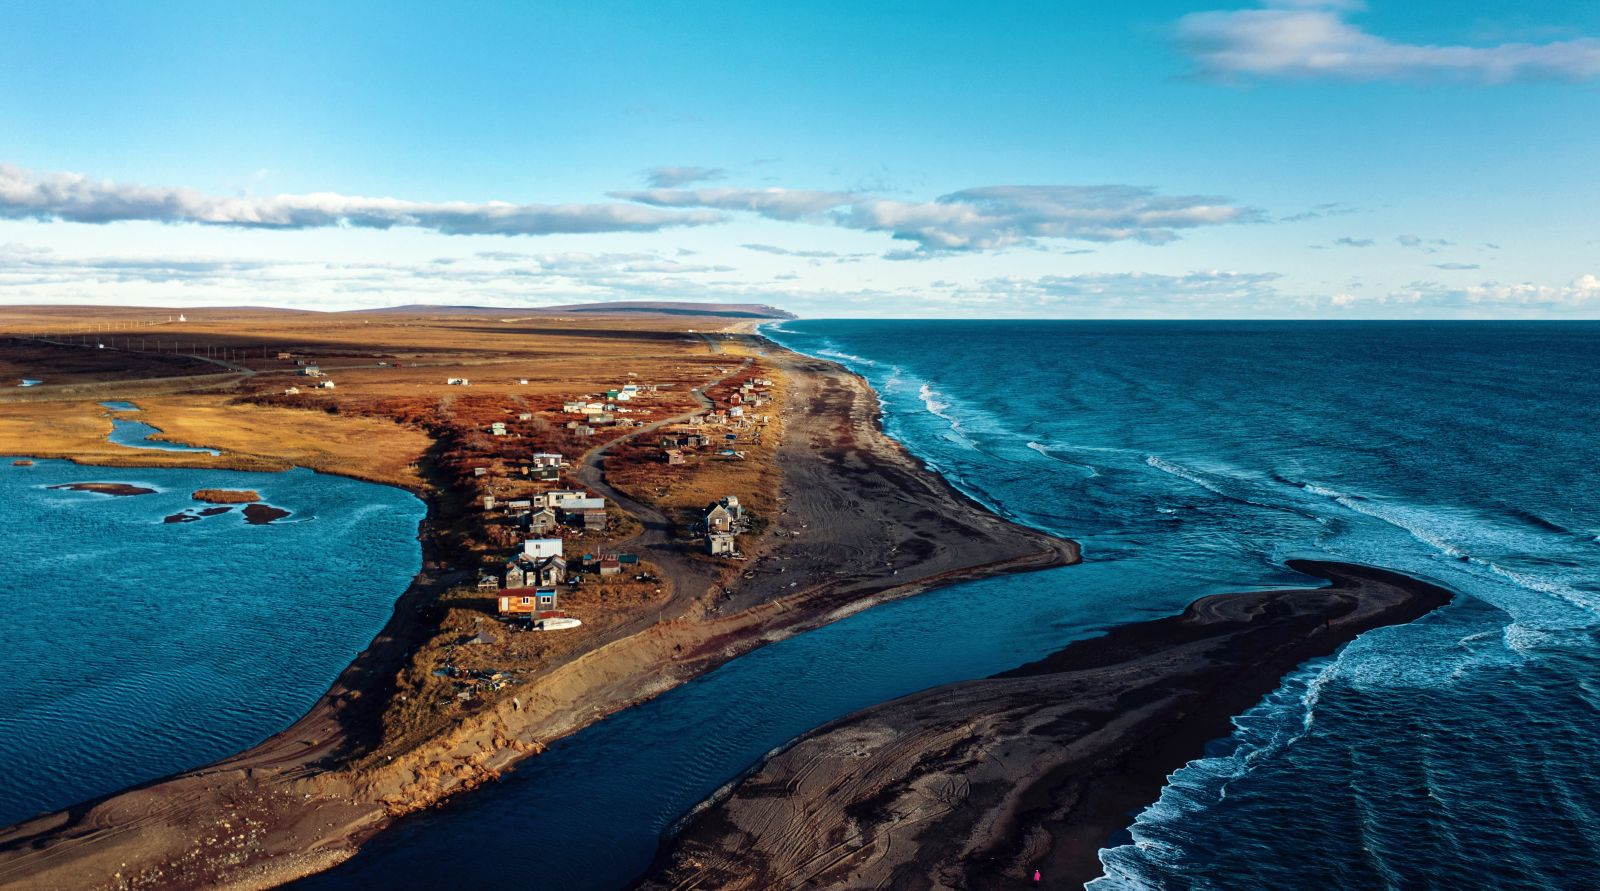 The Nome River enters the Bering Sea